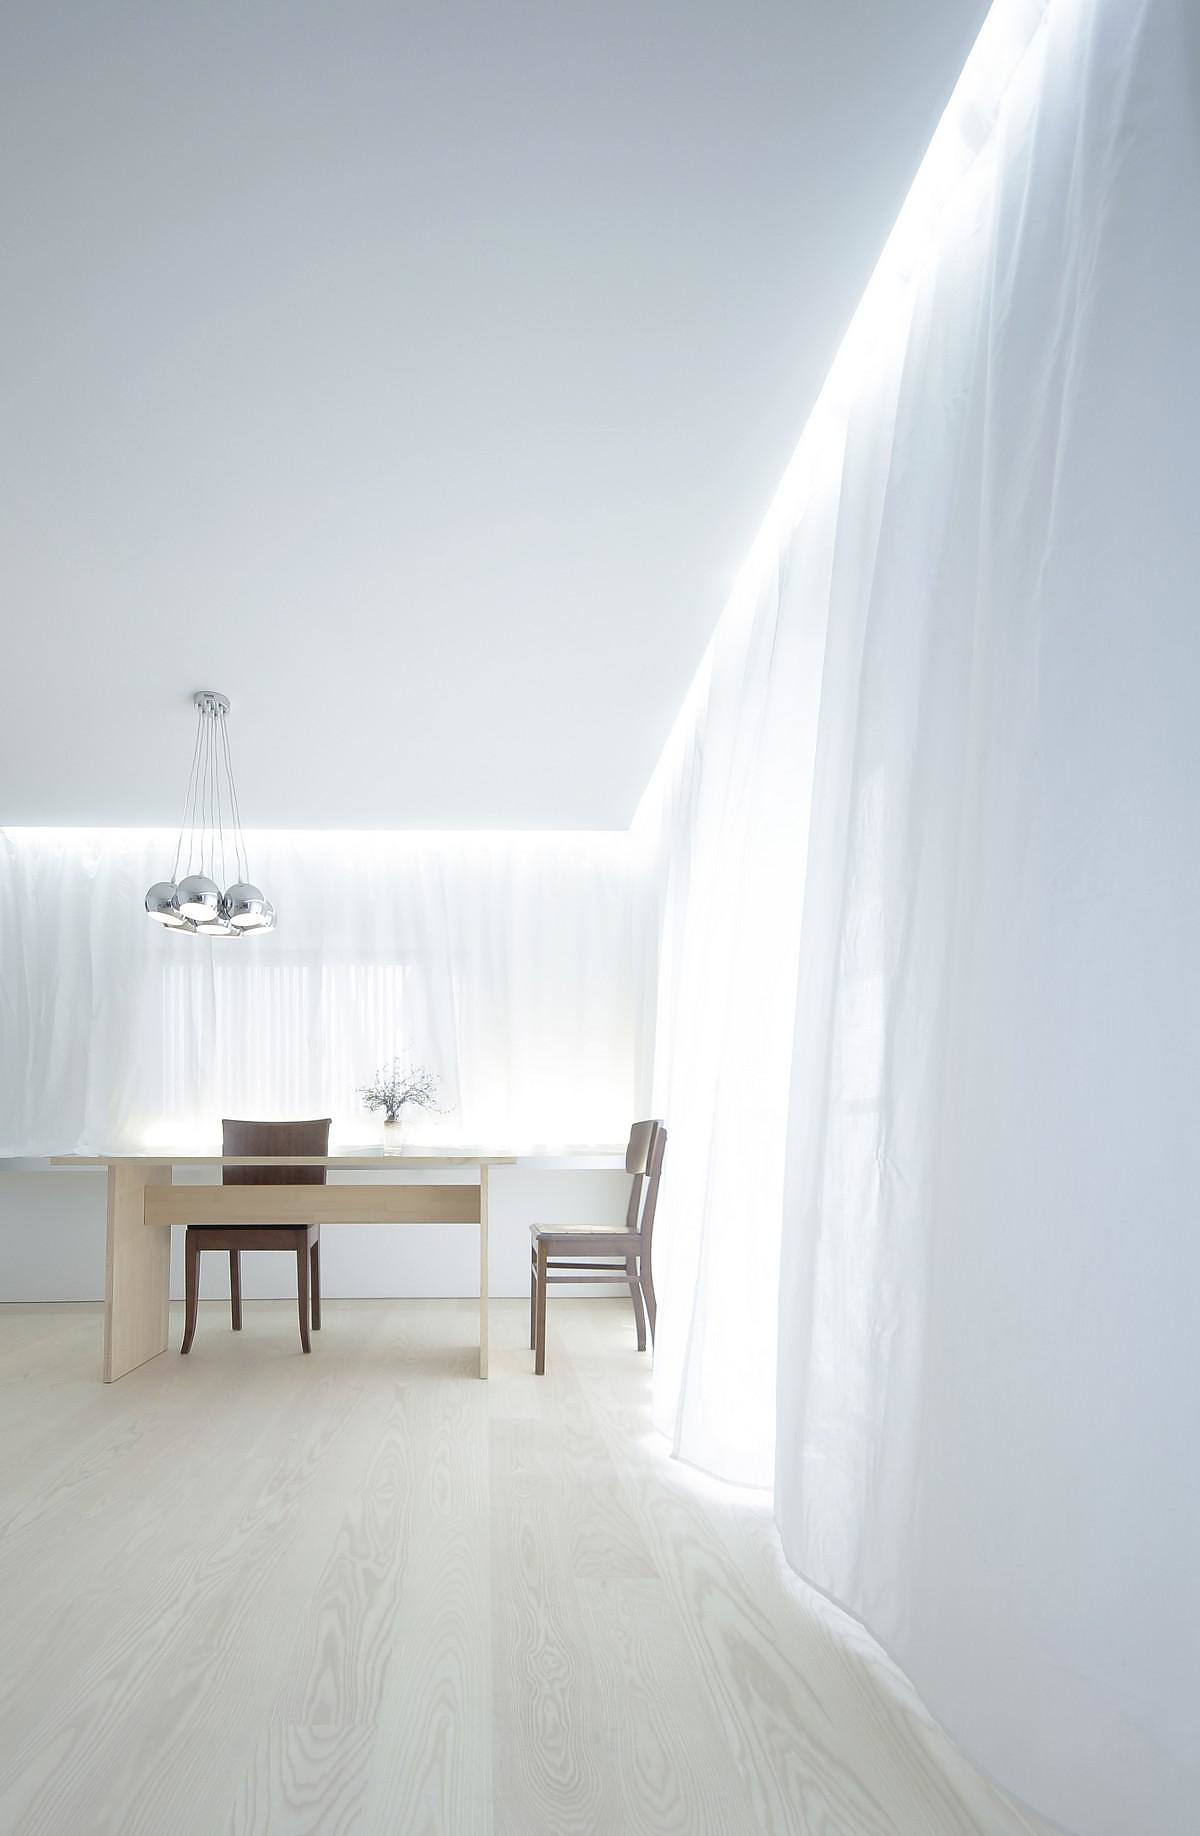 House for Installation by Jun Marata.